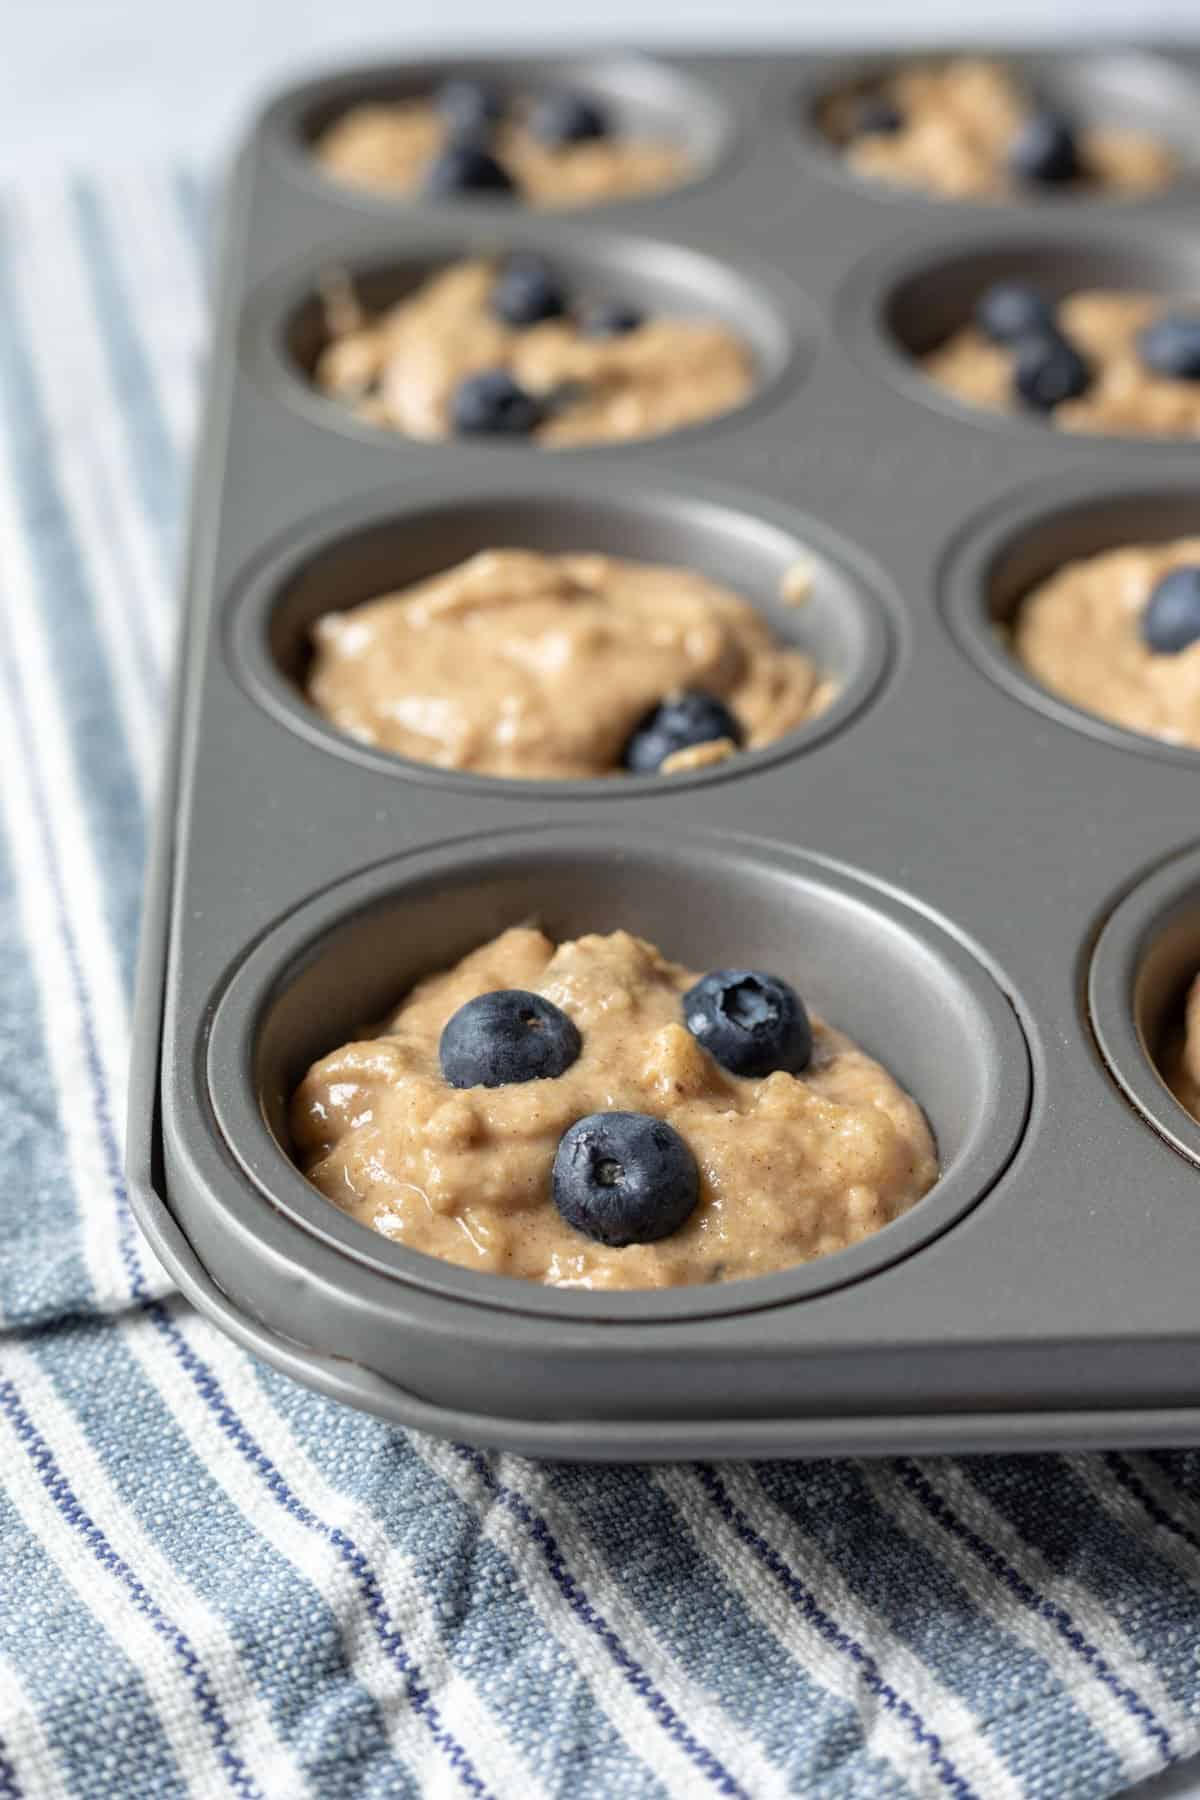 unbaked muffin batter in standard muffin pan.